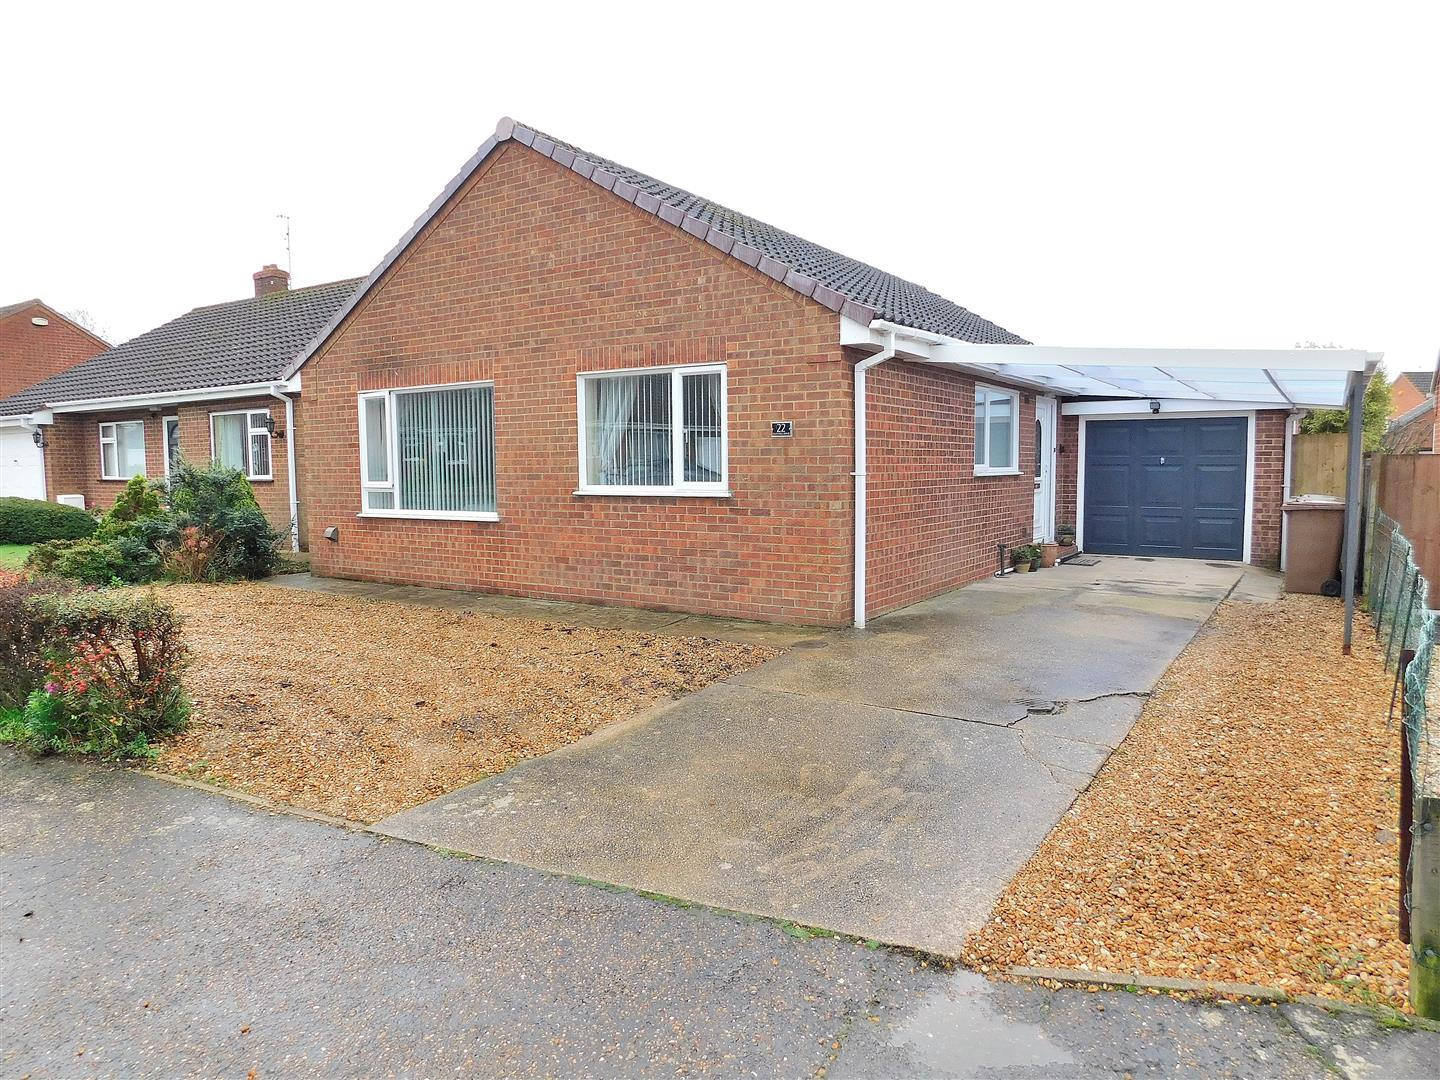 3 bed detached bungalow for sale in King's Lynn, PE31 6JT, PE31